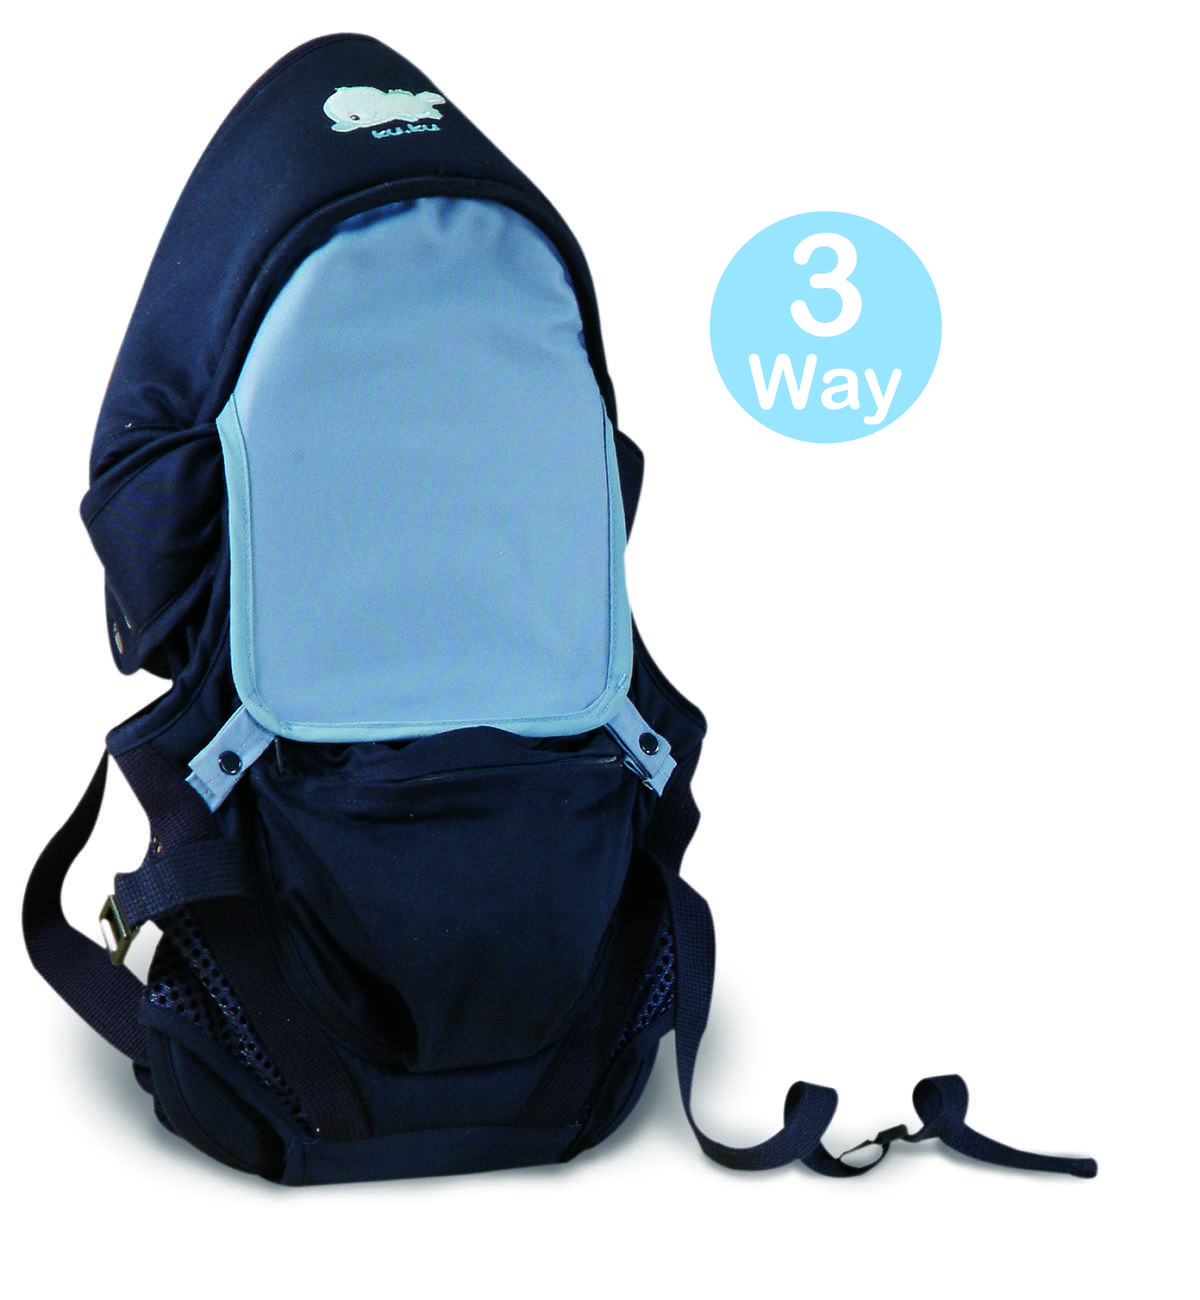 3-in-1Carrier